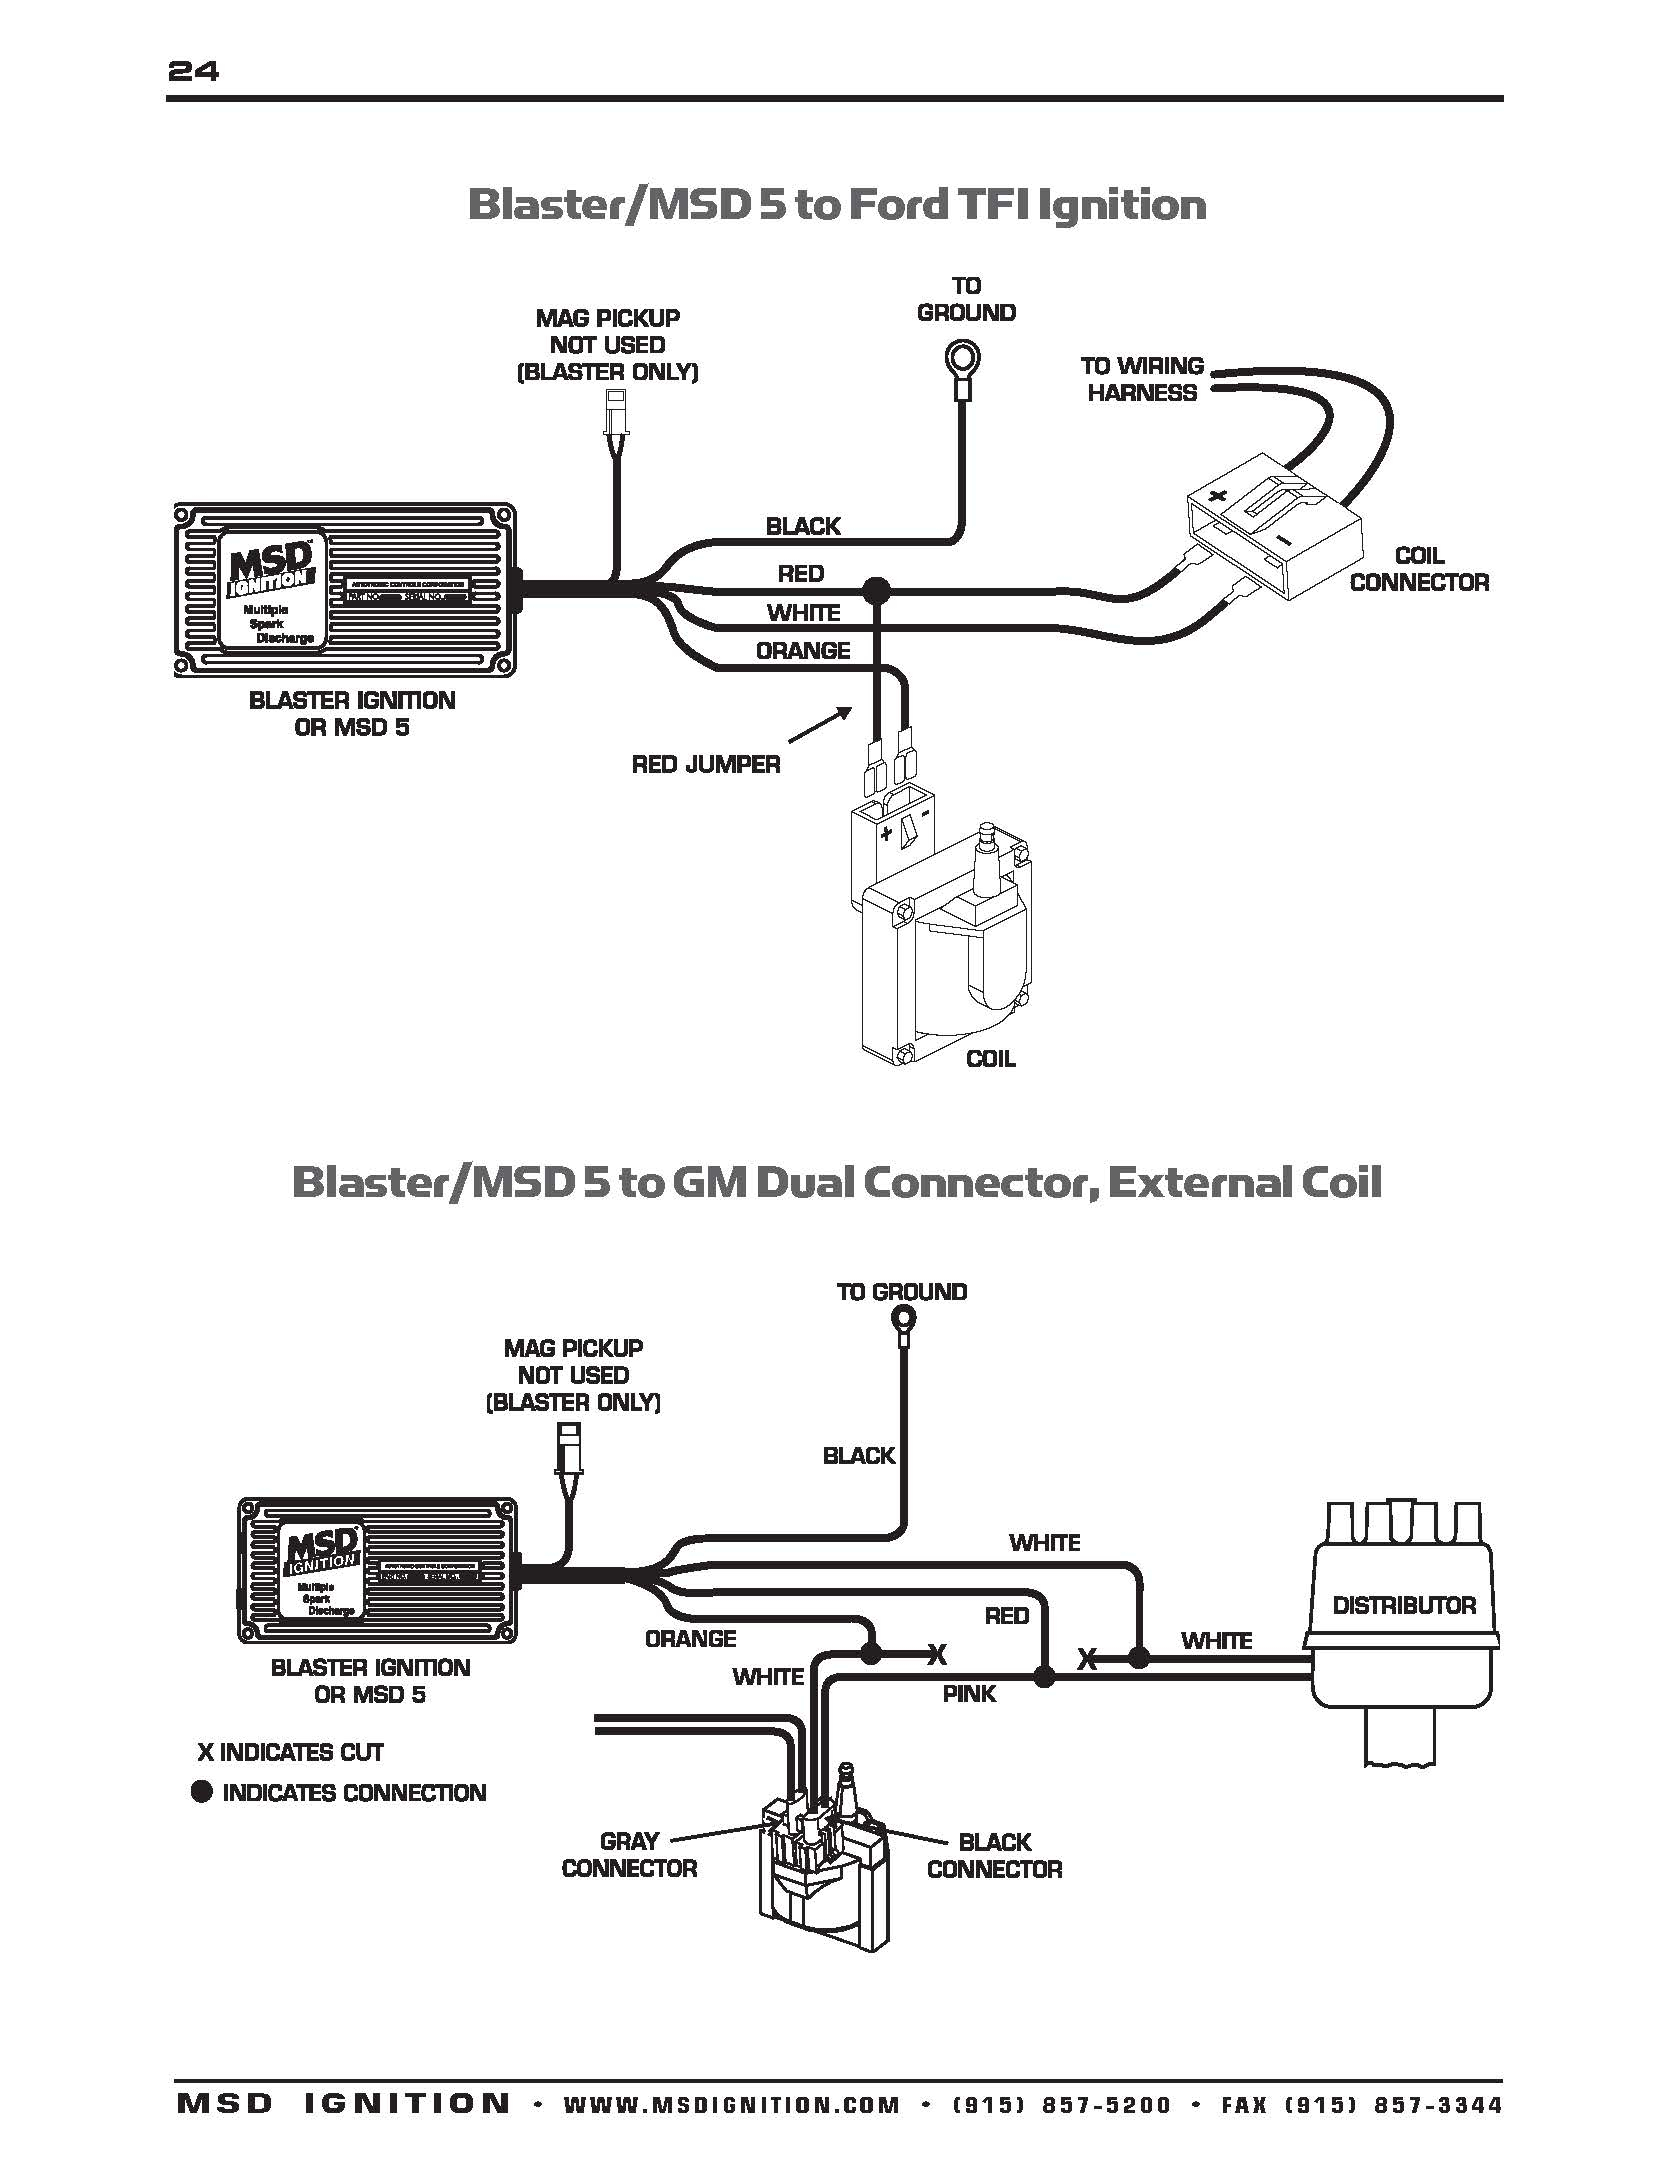 2Wire Distributor Wiring Diagram Msd 6Al Connected To | Wiring Diagram - Msd 6Al Wiring Diagram Ford